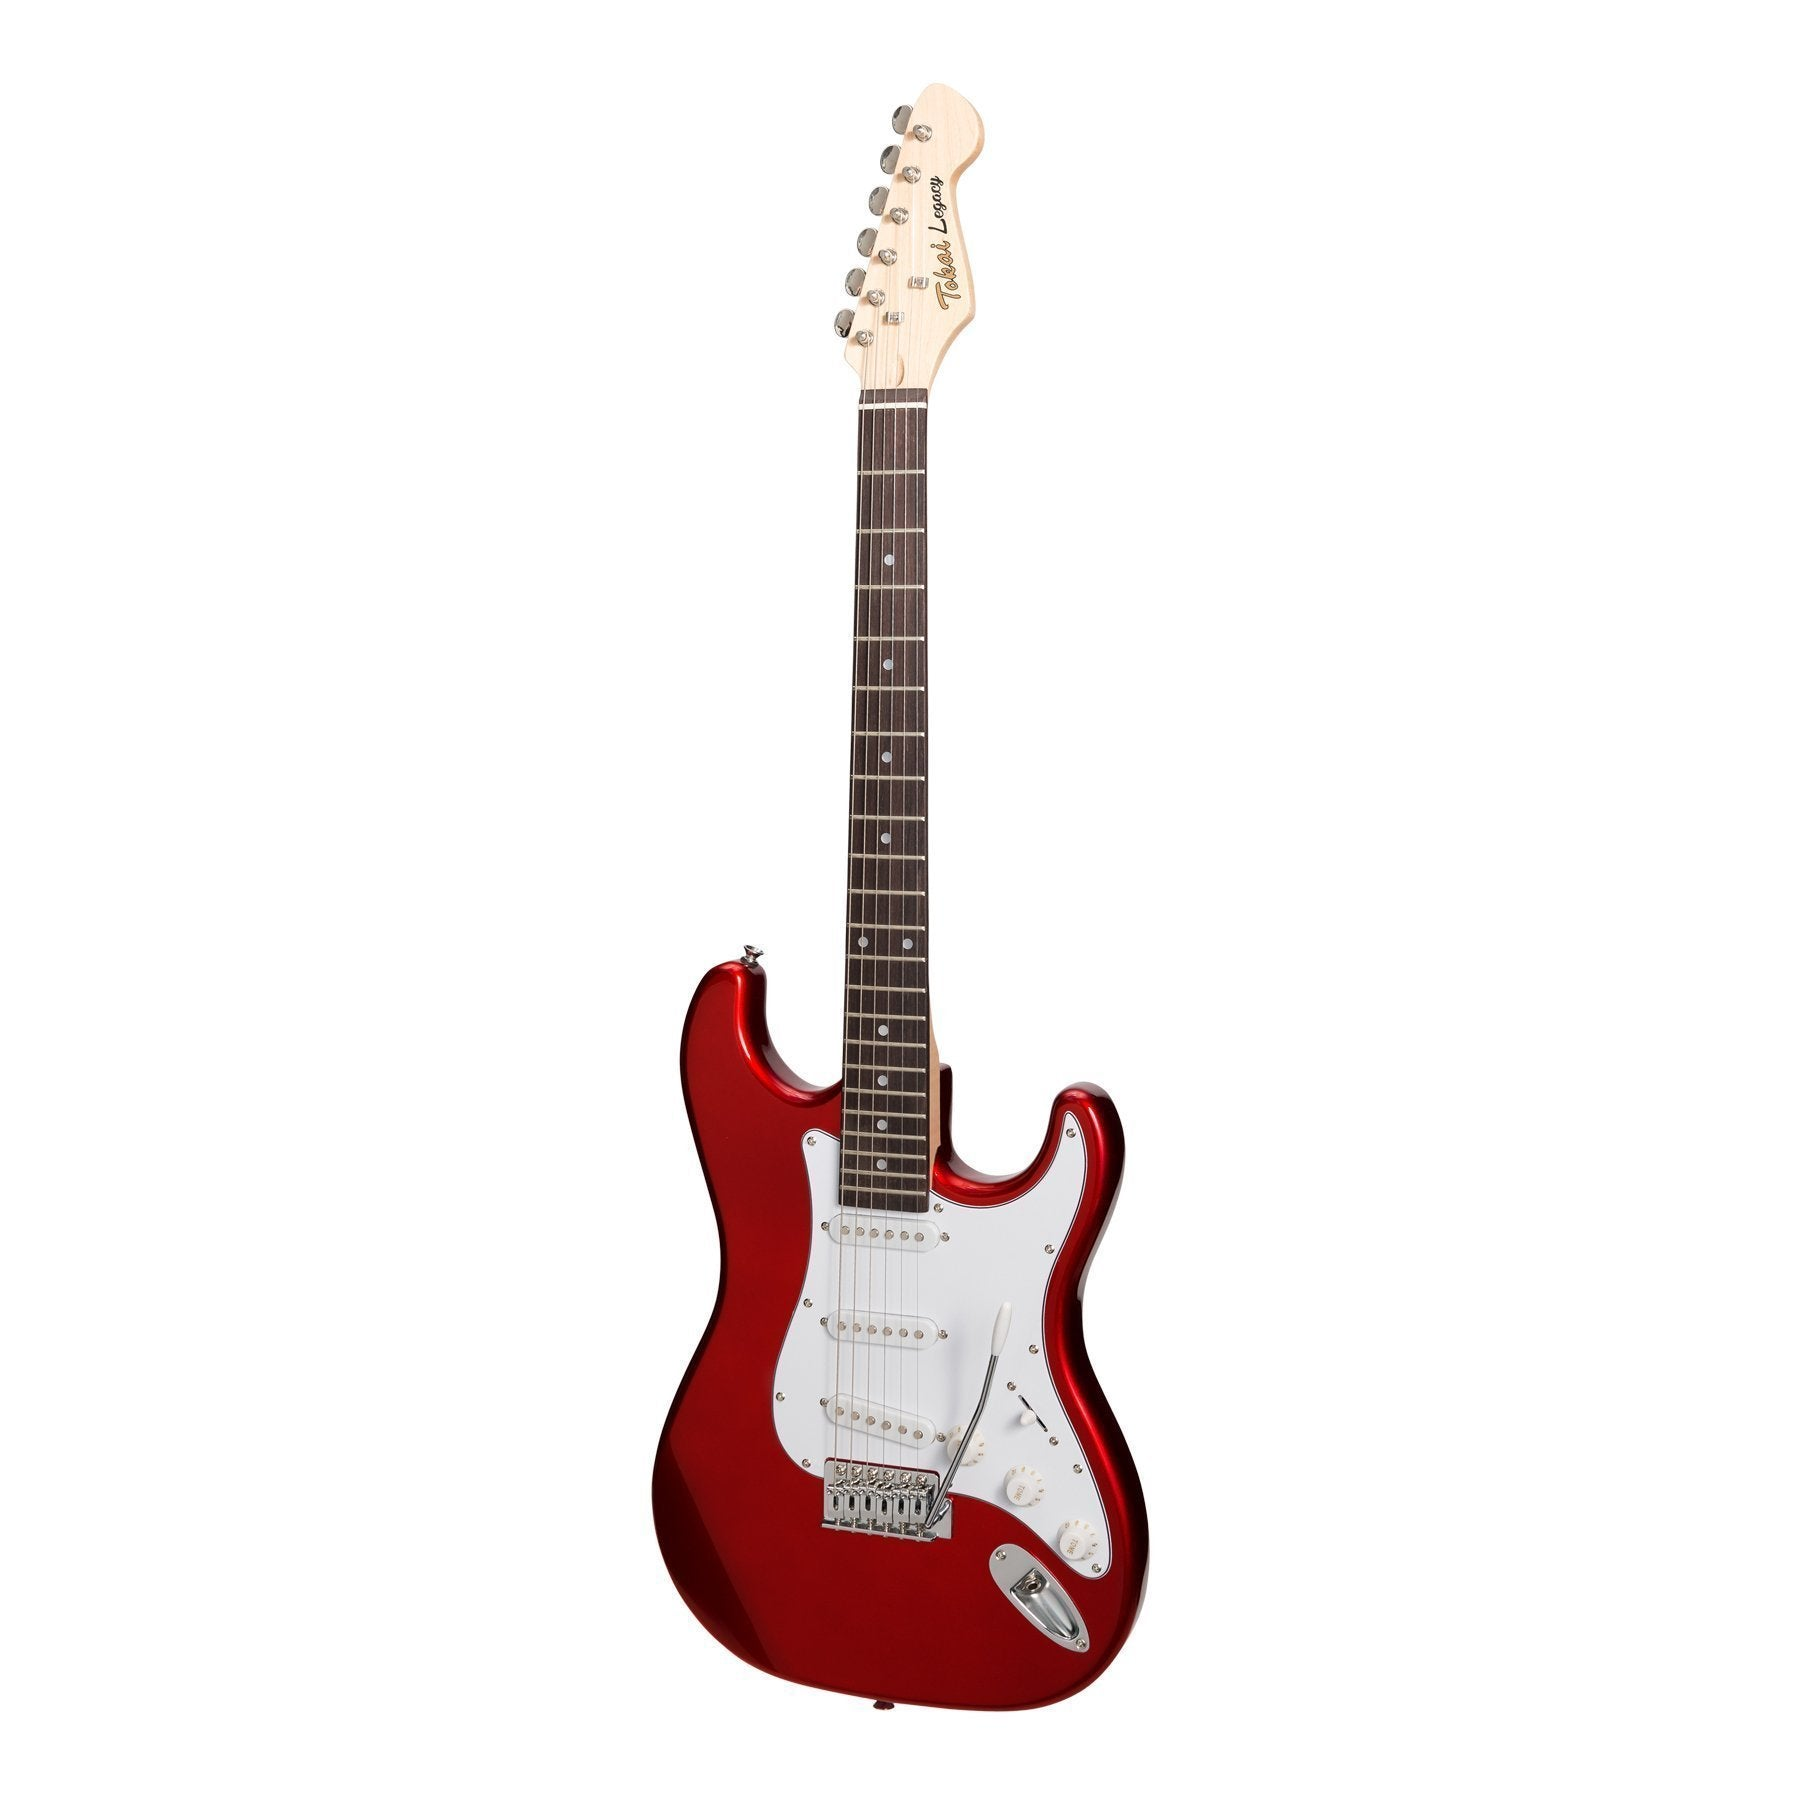 Tokai 'Legacy Series' ST-Style Electric Guitar (Candy Apple Red)-TL-ST-CAR/R